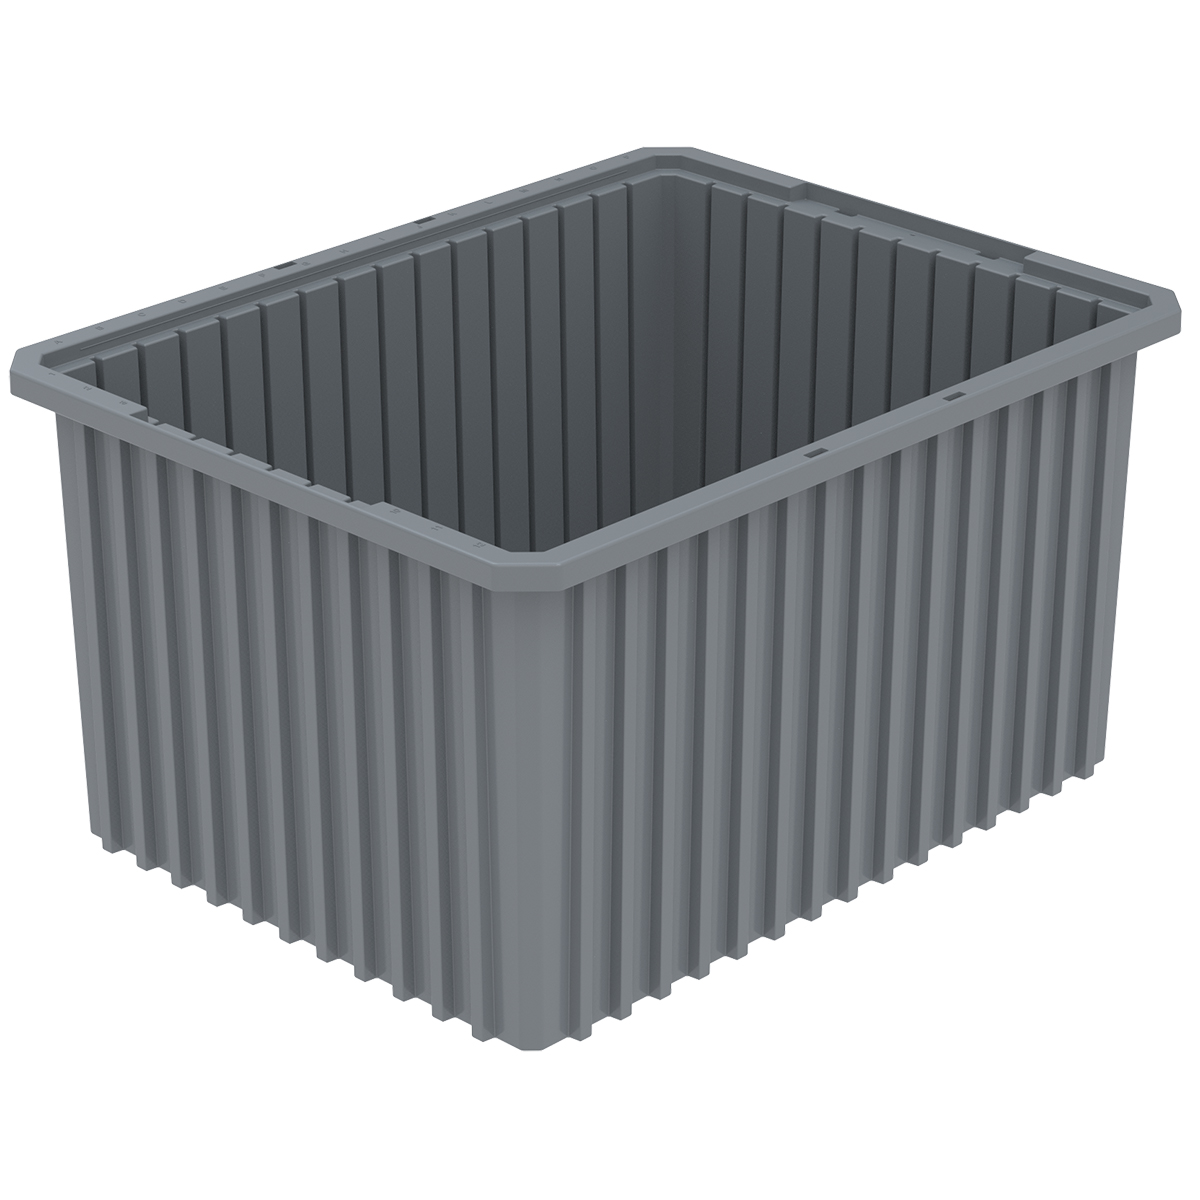 Akro-Grid Dividable Box 22-1/2 x 17-1/2 x 12, Gray.  This item sold in carton quantities of 3.